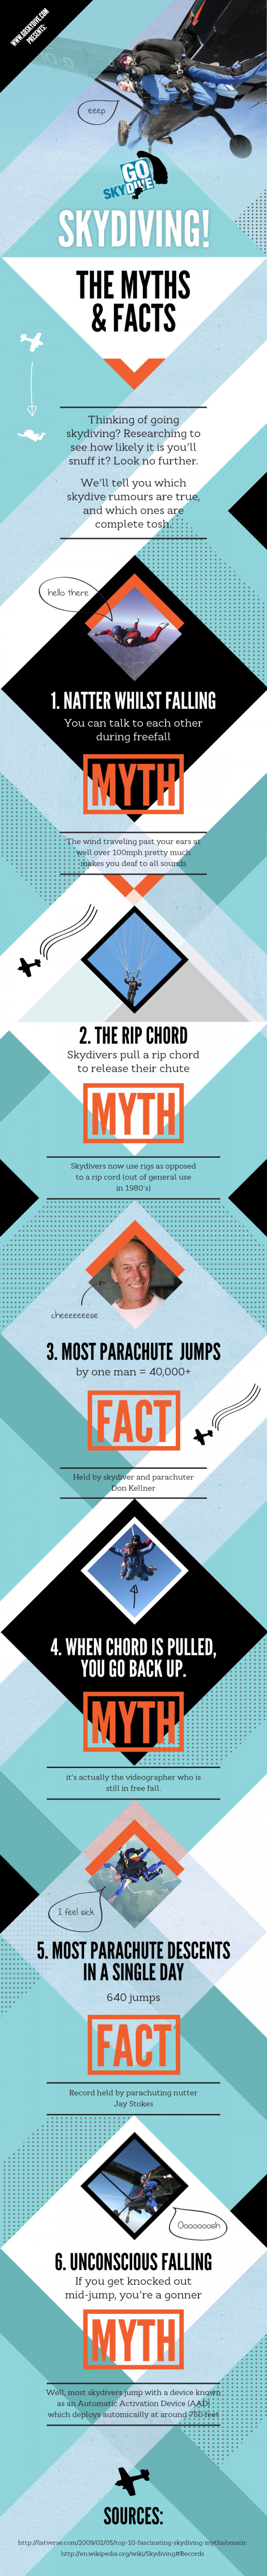 Facts & Myths of Skydiving Infographic